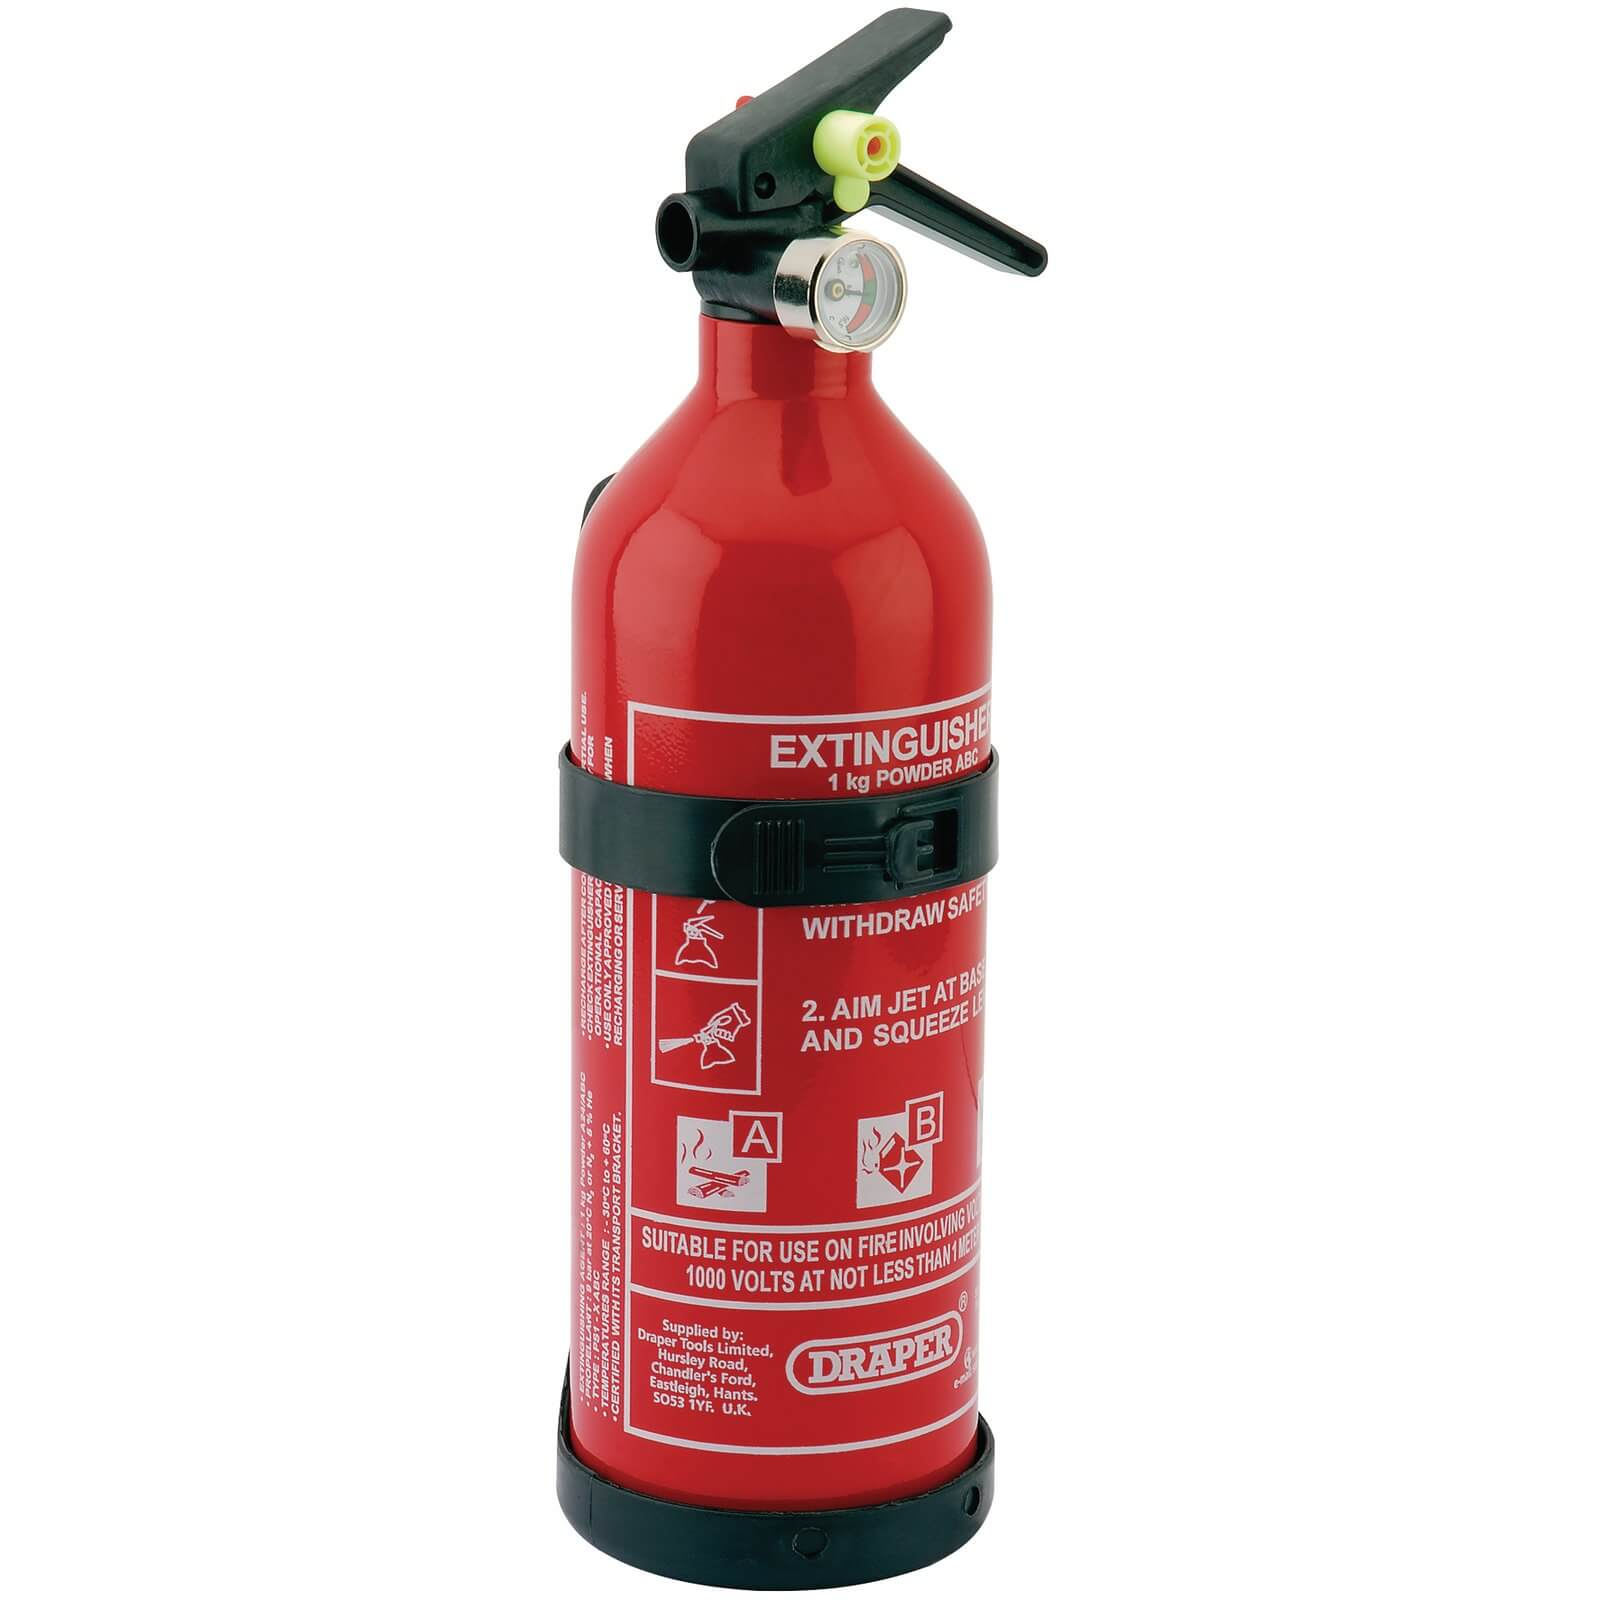 Image of Draper Dry Powder Fire Extinguisher